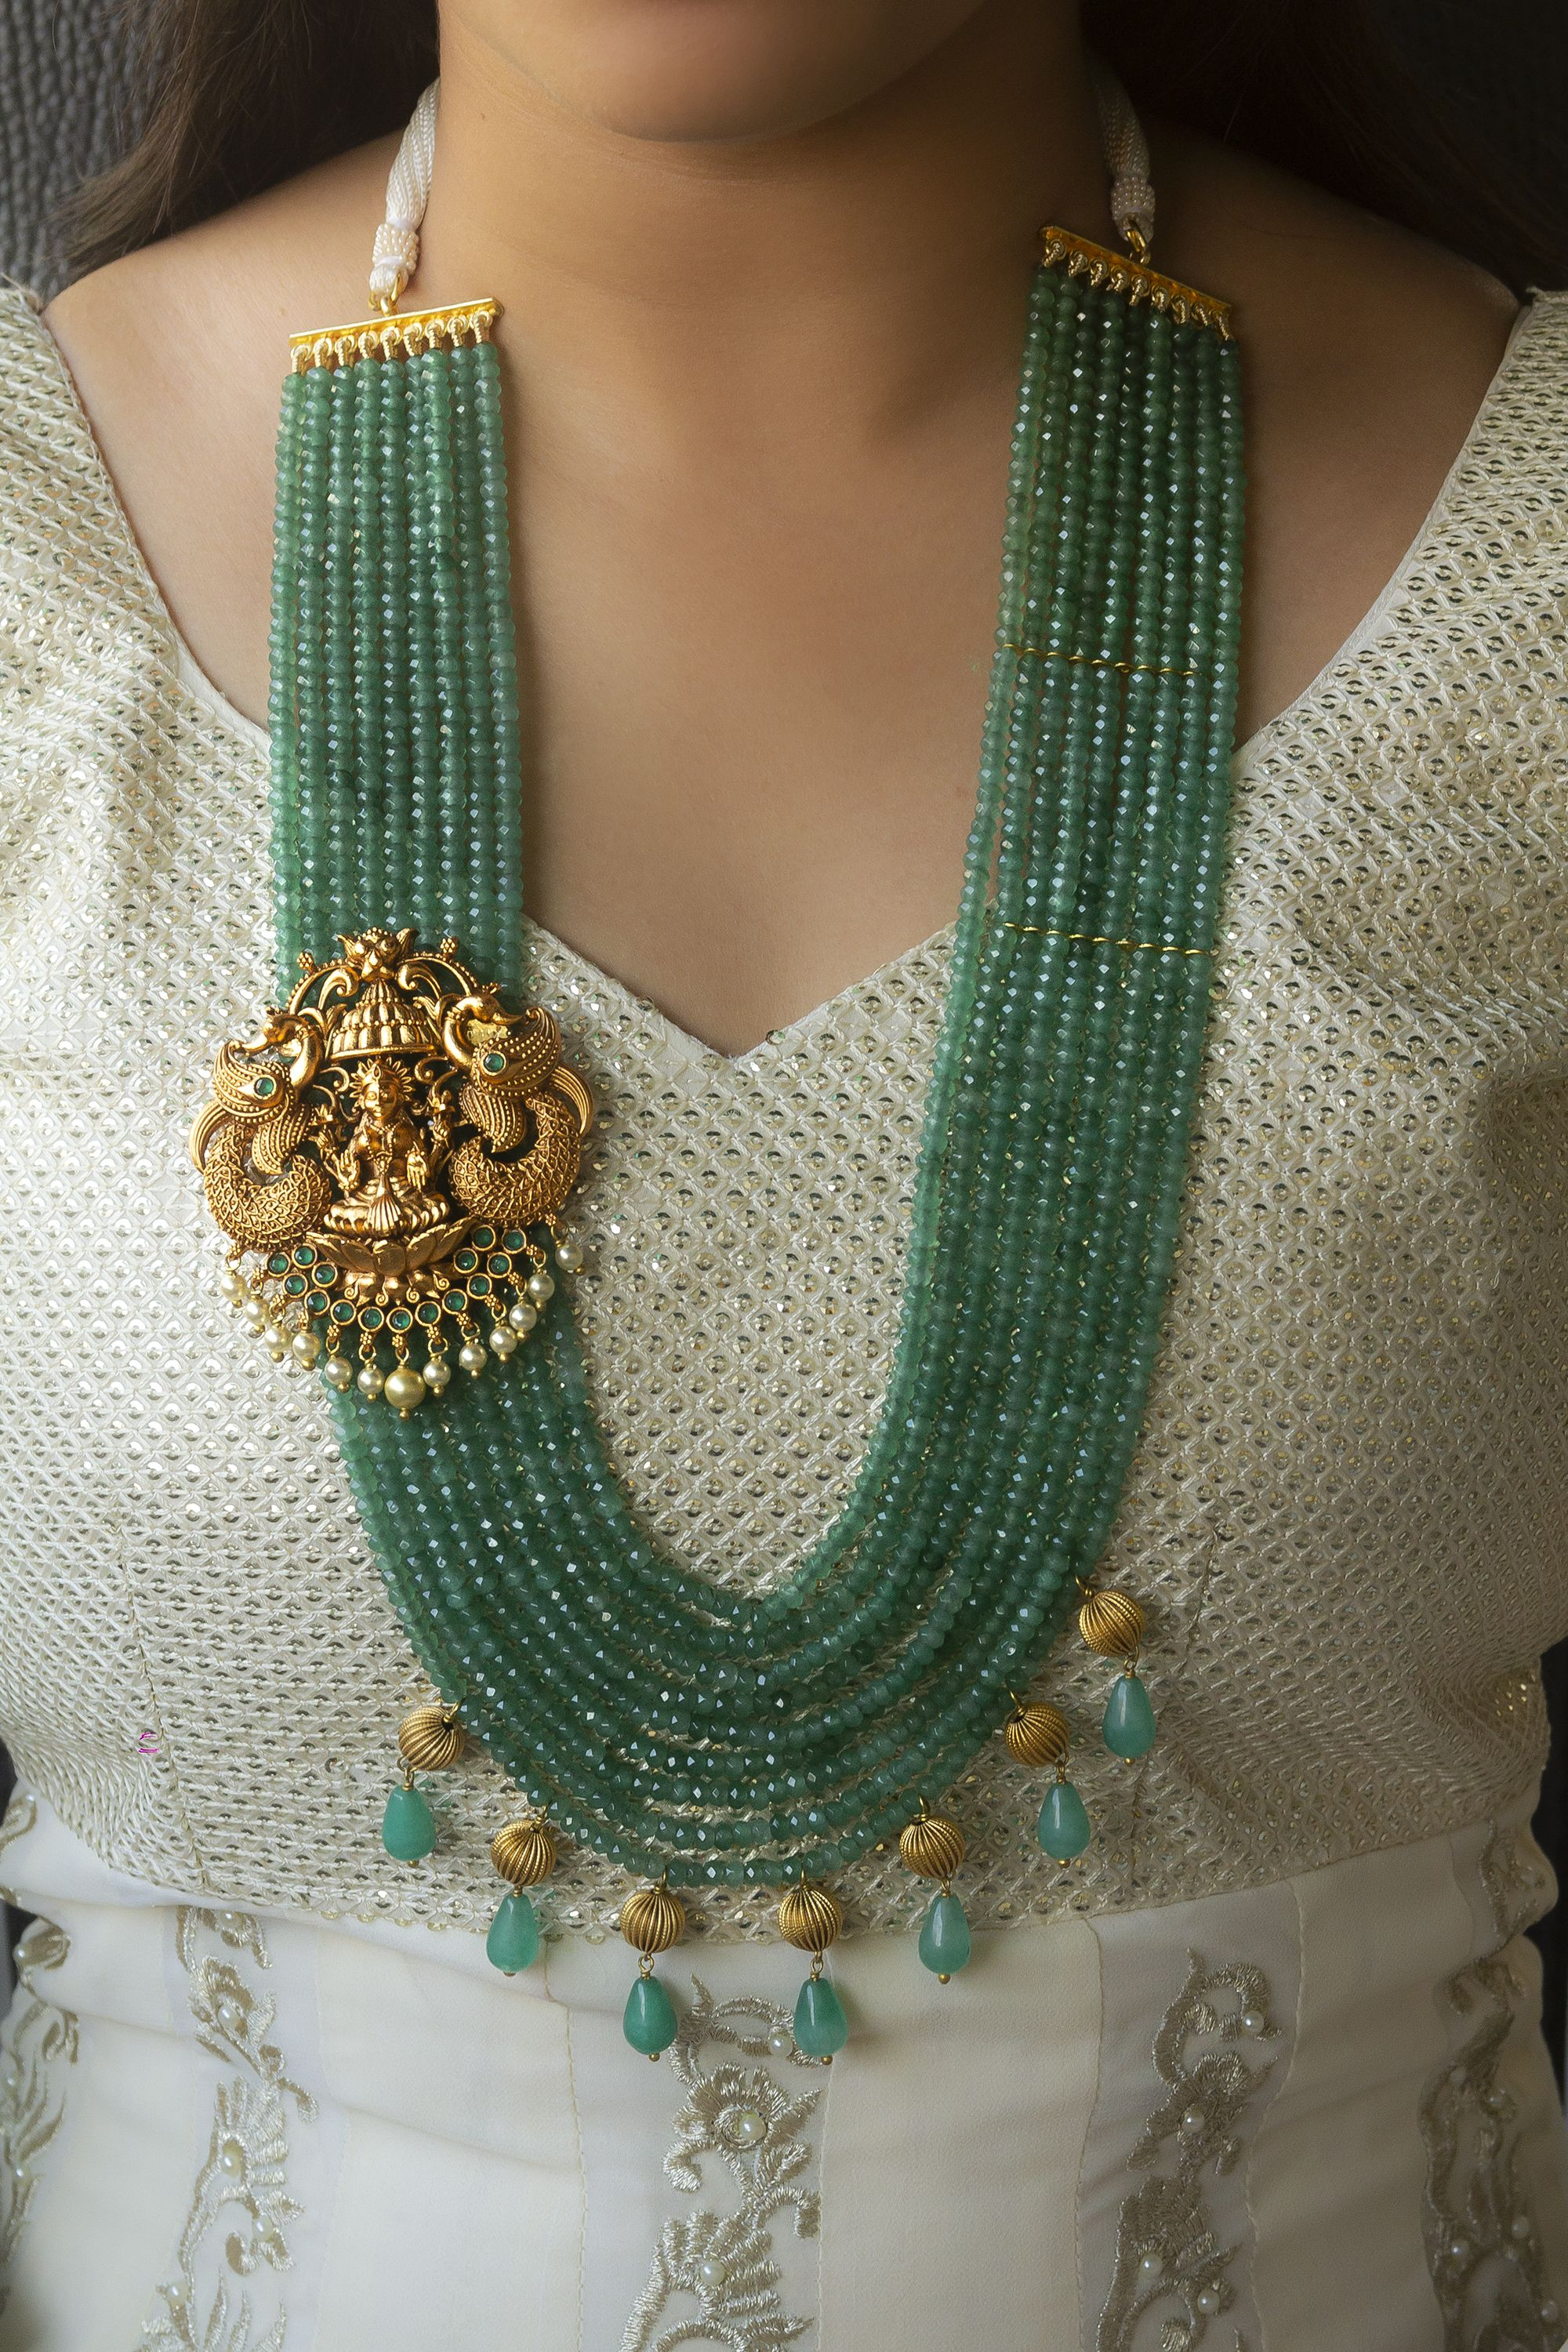 GREEN NECKLACE This necklace set is made of green